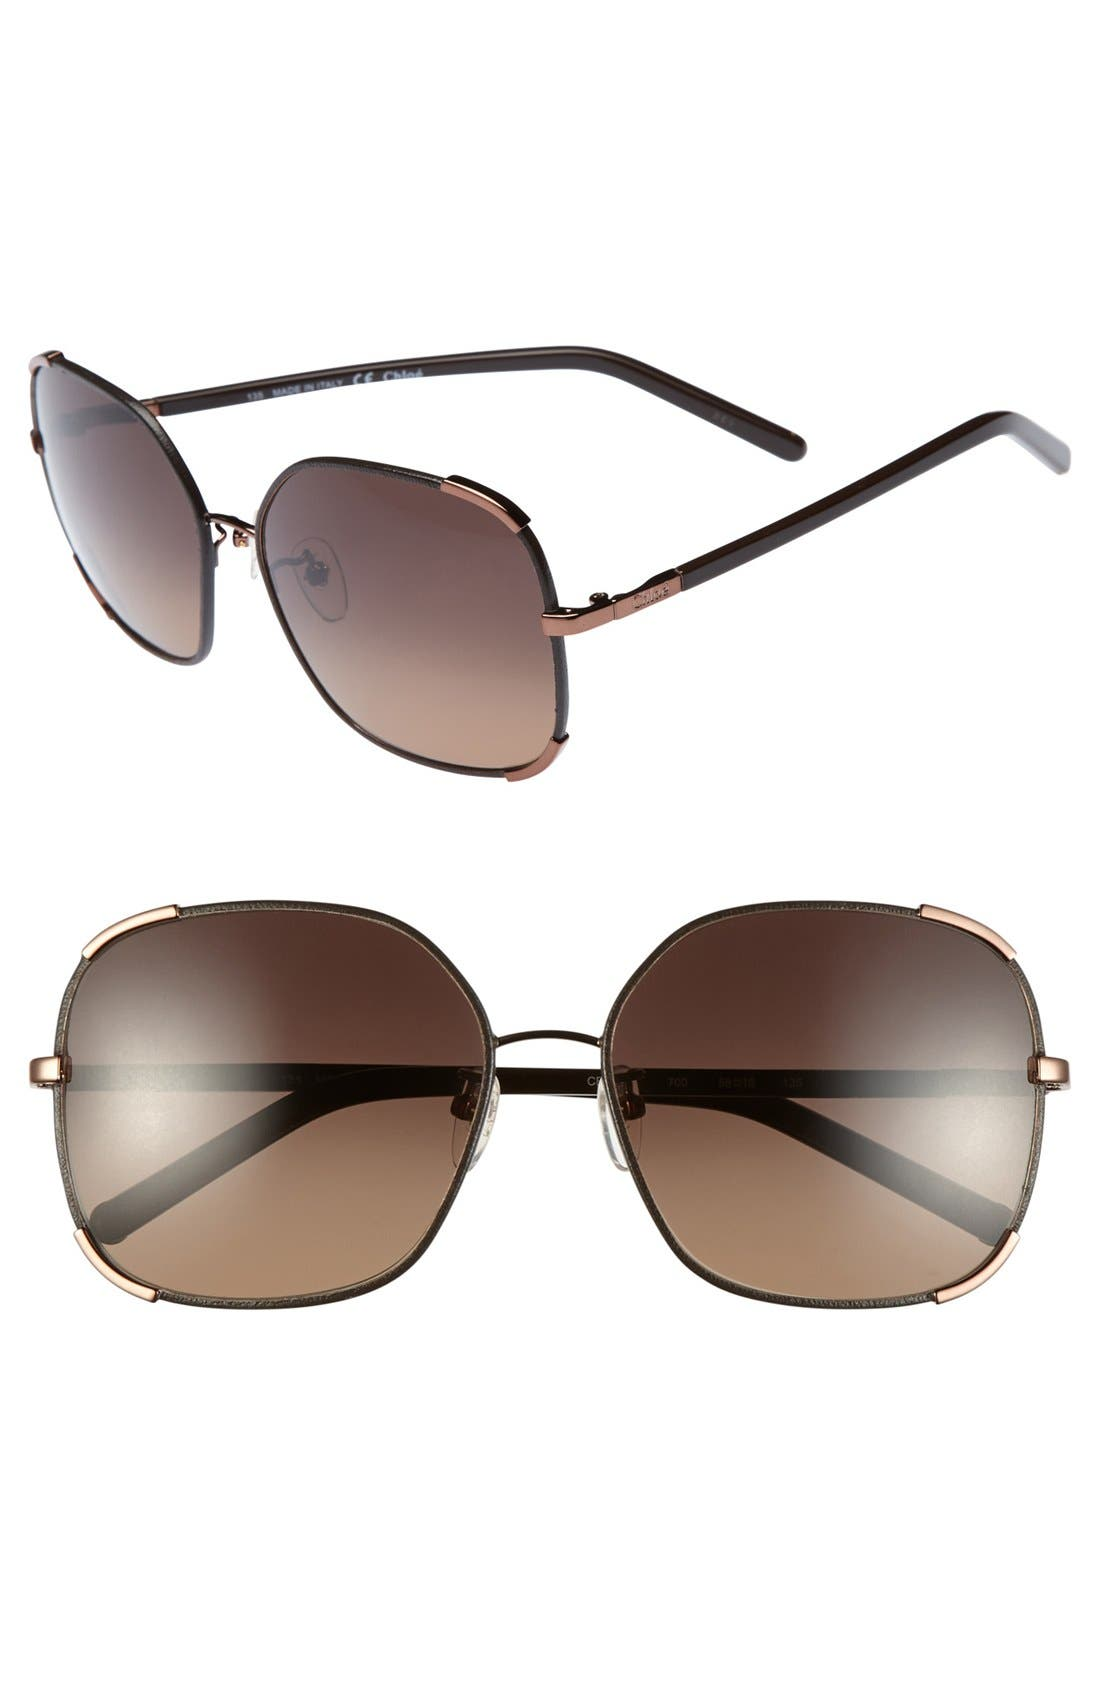 Chloe 'Nerine' 58mm Sunglasses,                             Main thumbnail 1, color,                             220